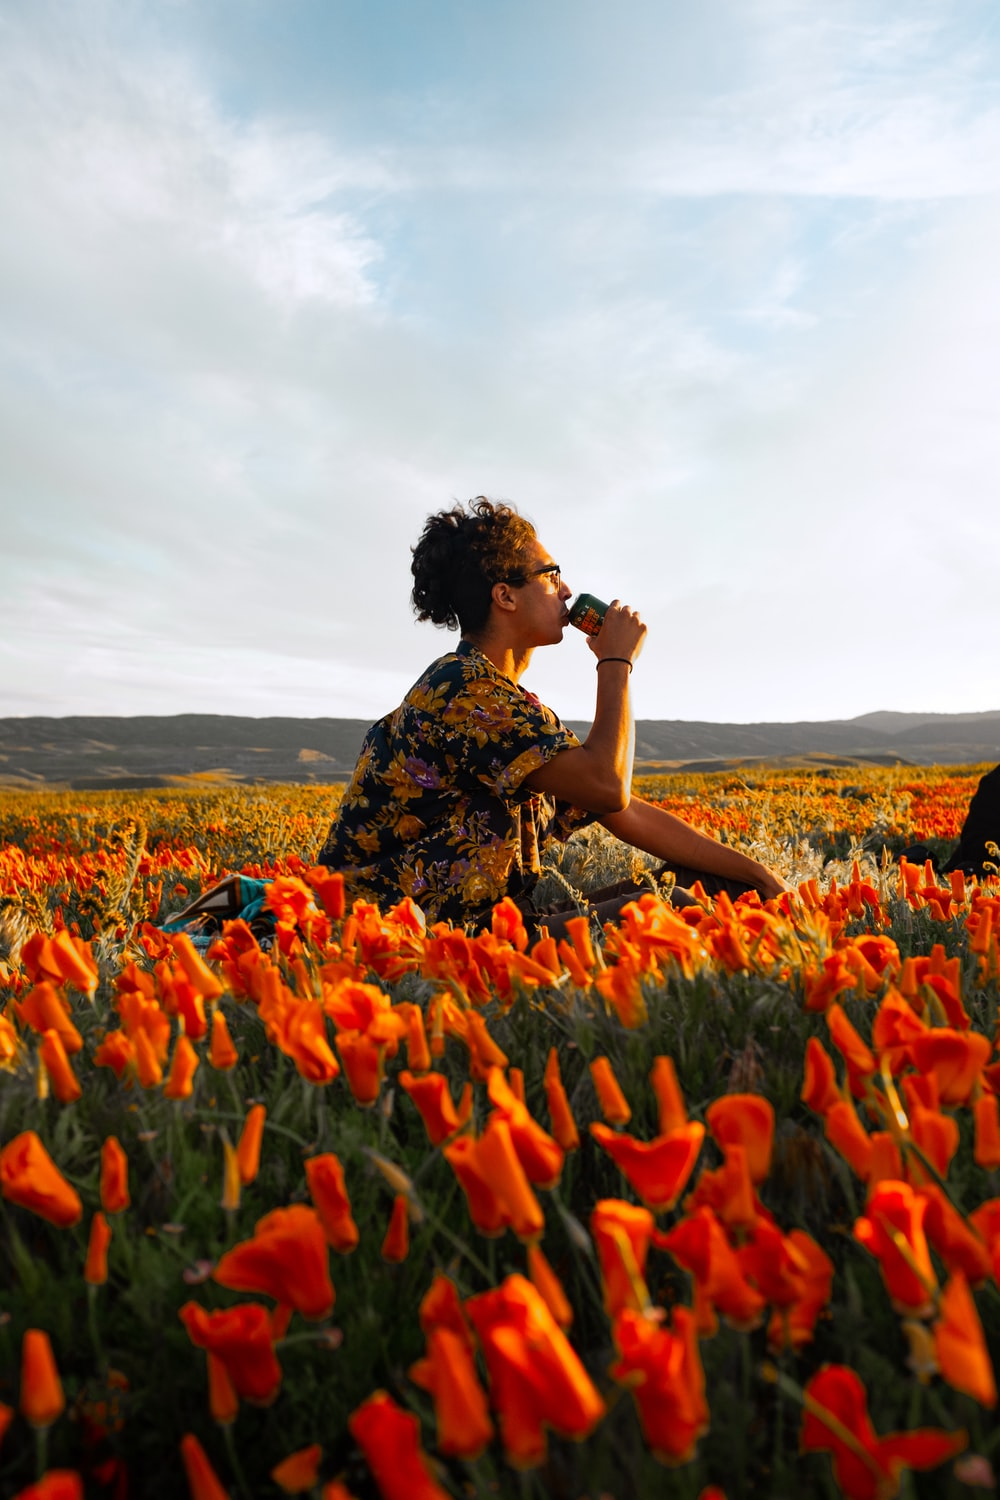 woman in black and brown floral dress sitting on red flower field during daytime